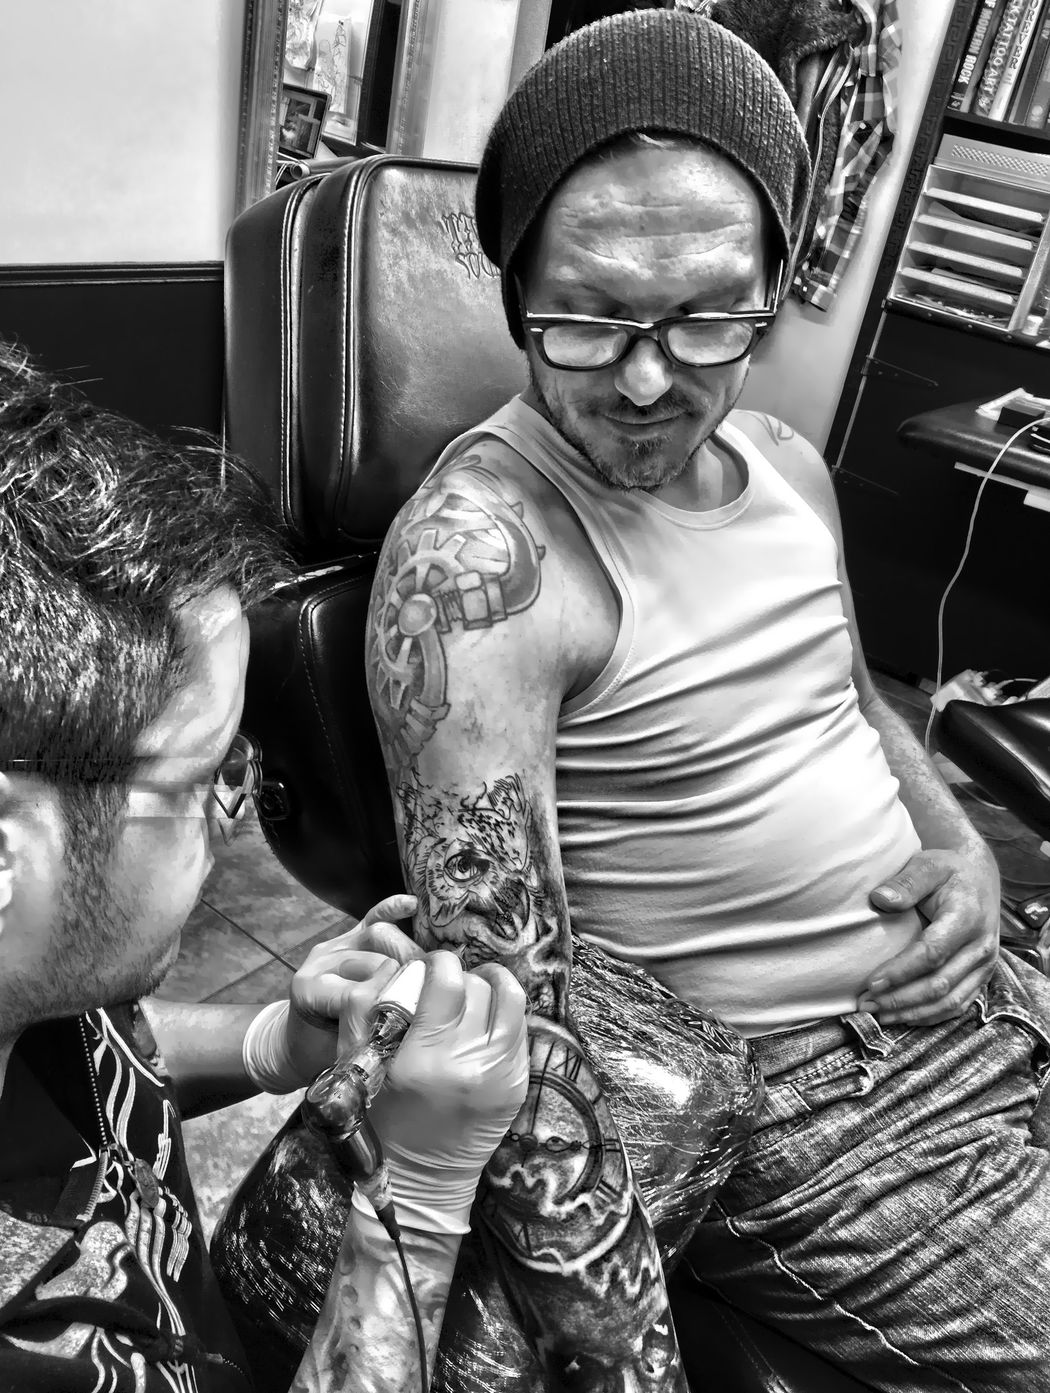 One More Tattoo Black And White Miguel Ameliach Luxembourgtattoo Tattoo Tattooed Inked Realistictattoo Besttattoo